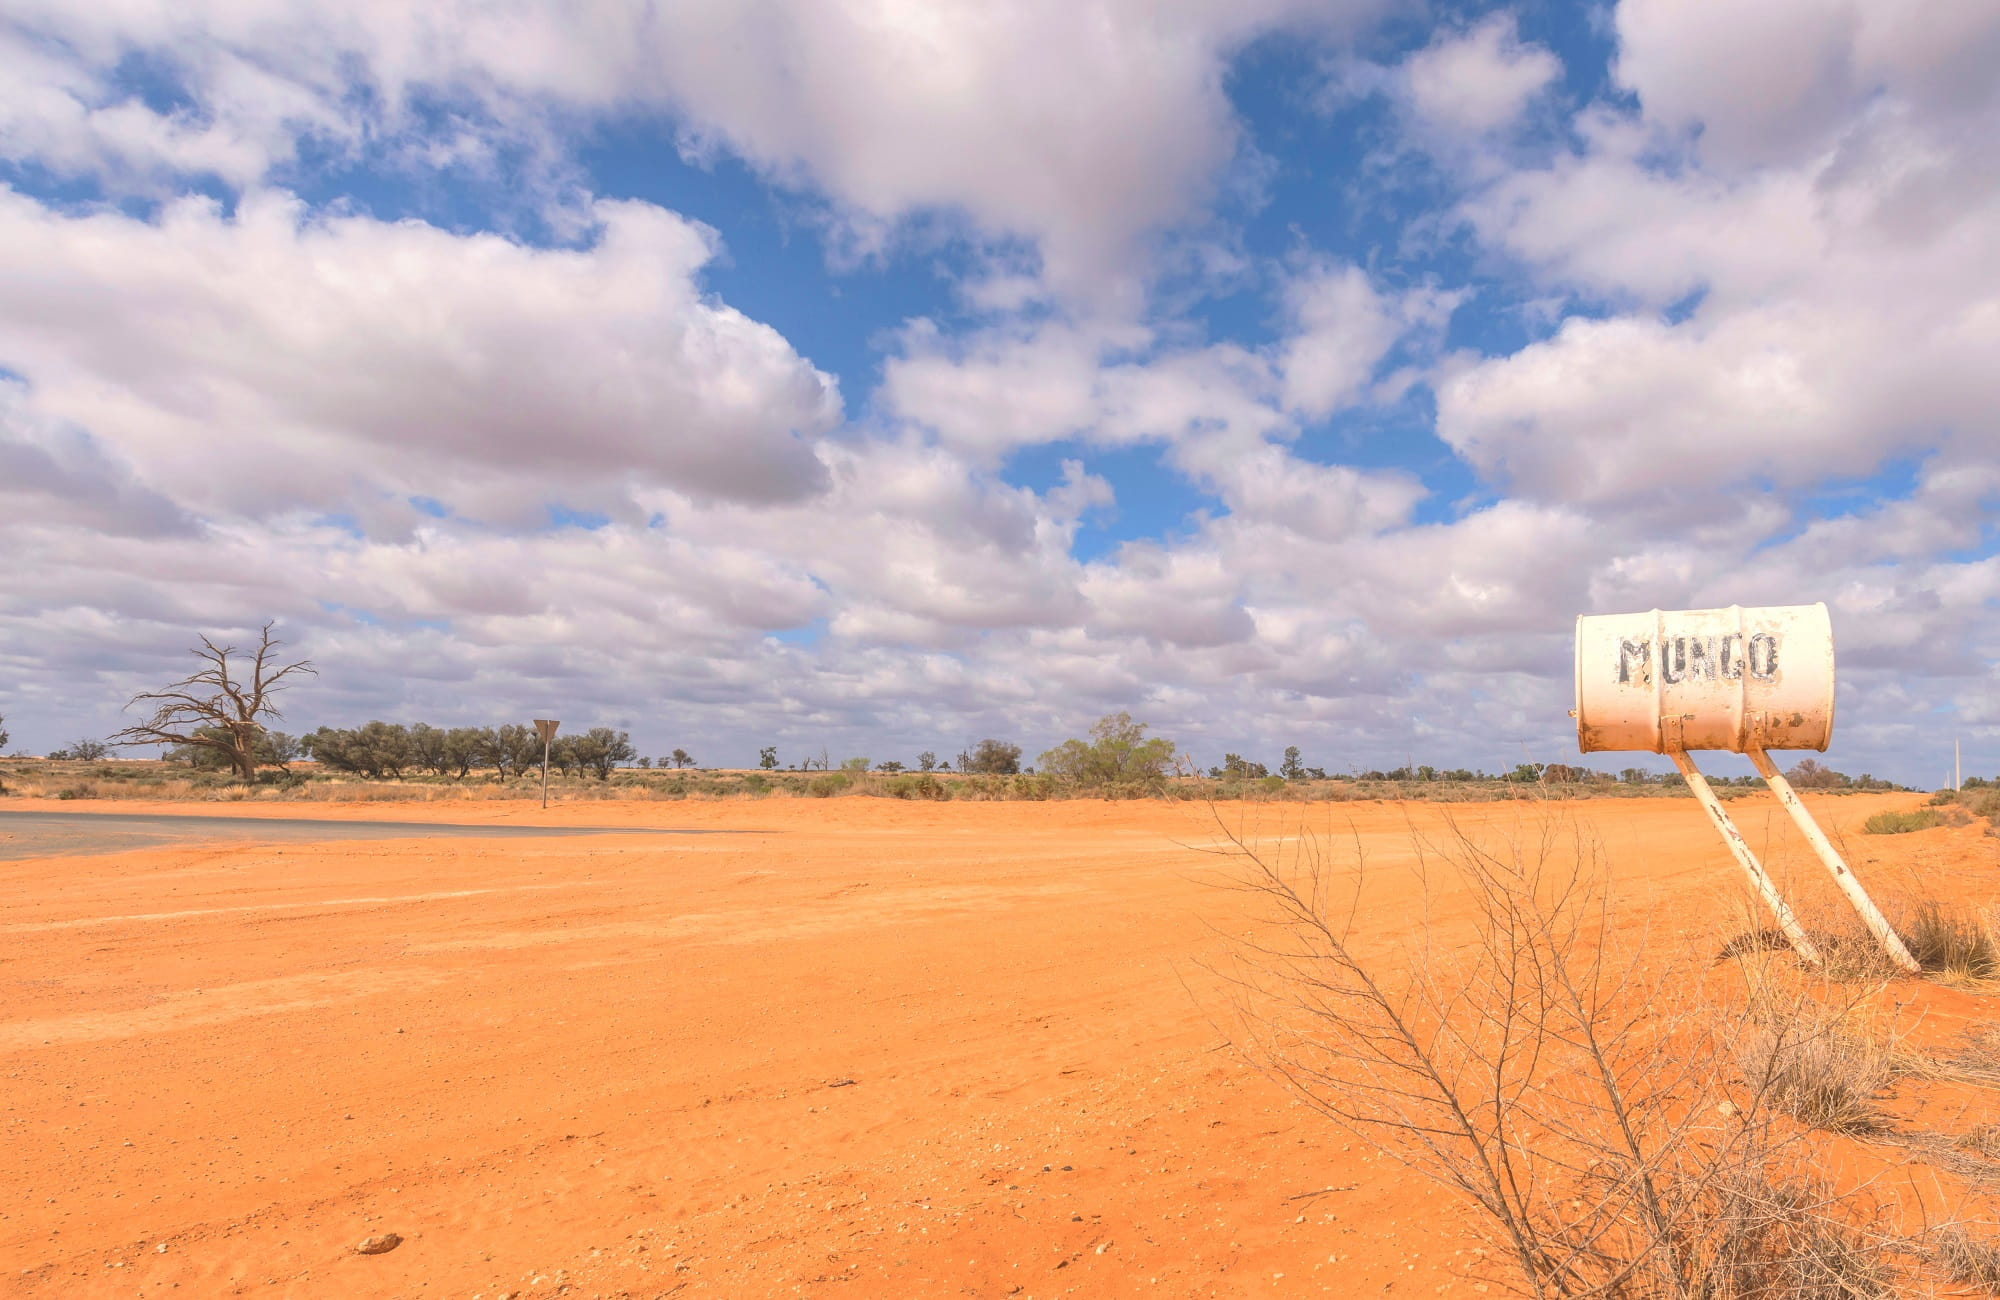 Mailbox beside a dirt road near Mungo National Park. Photo: Ken Stepnell